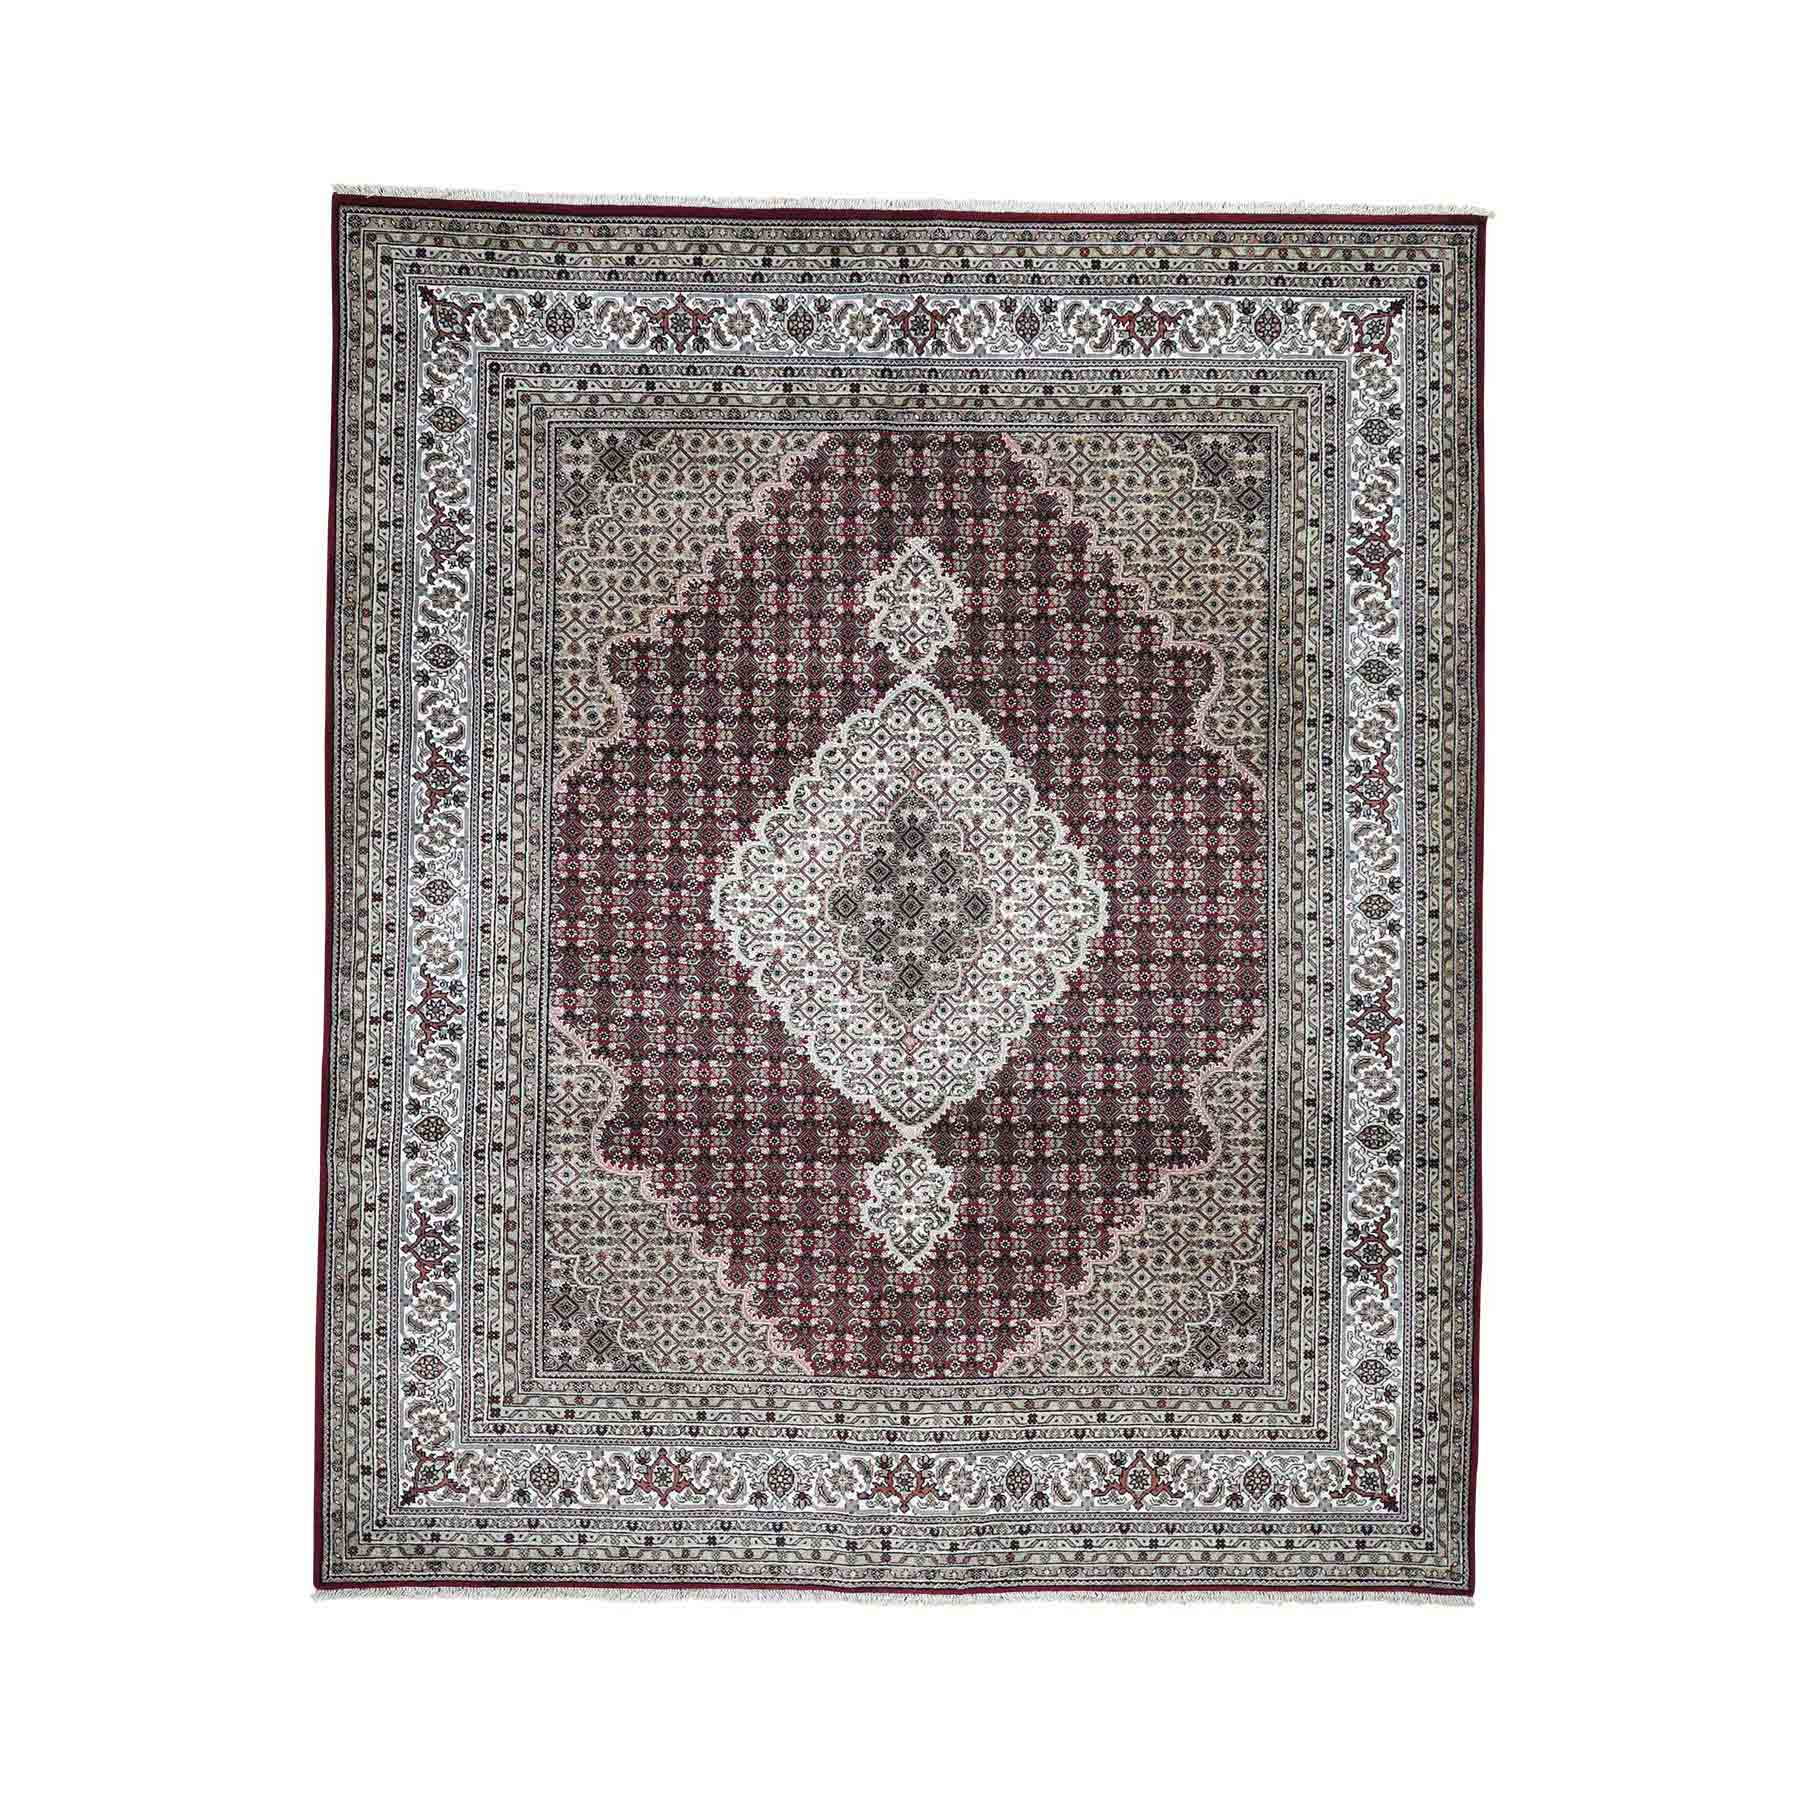 Wool and Silk Hand Knotted 250 Kpsi Tabriz Mahi Oriental Rug